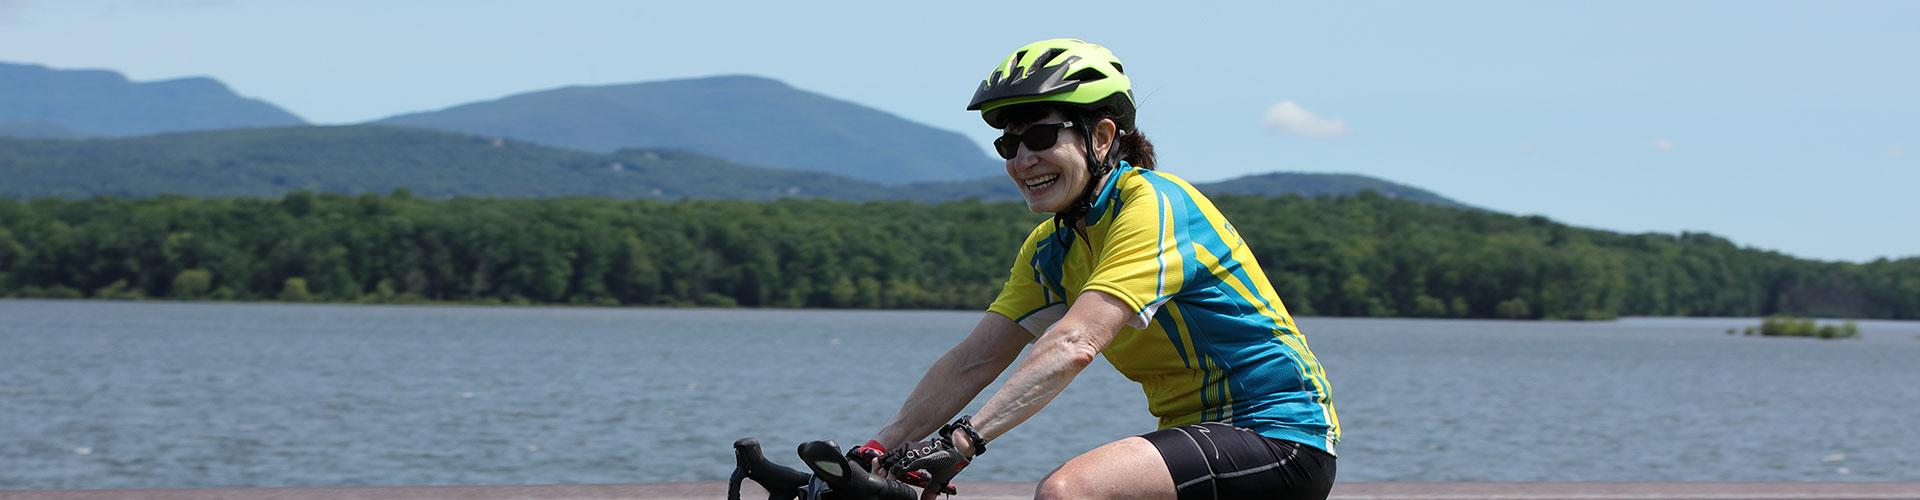 Woman riding bicycle with lake and mountains in background